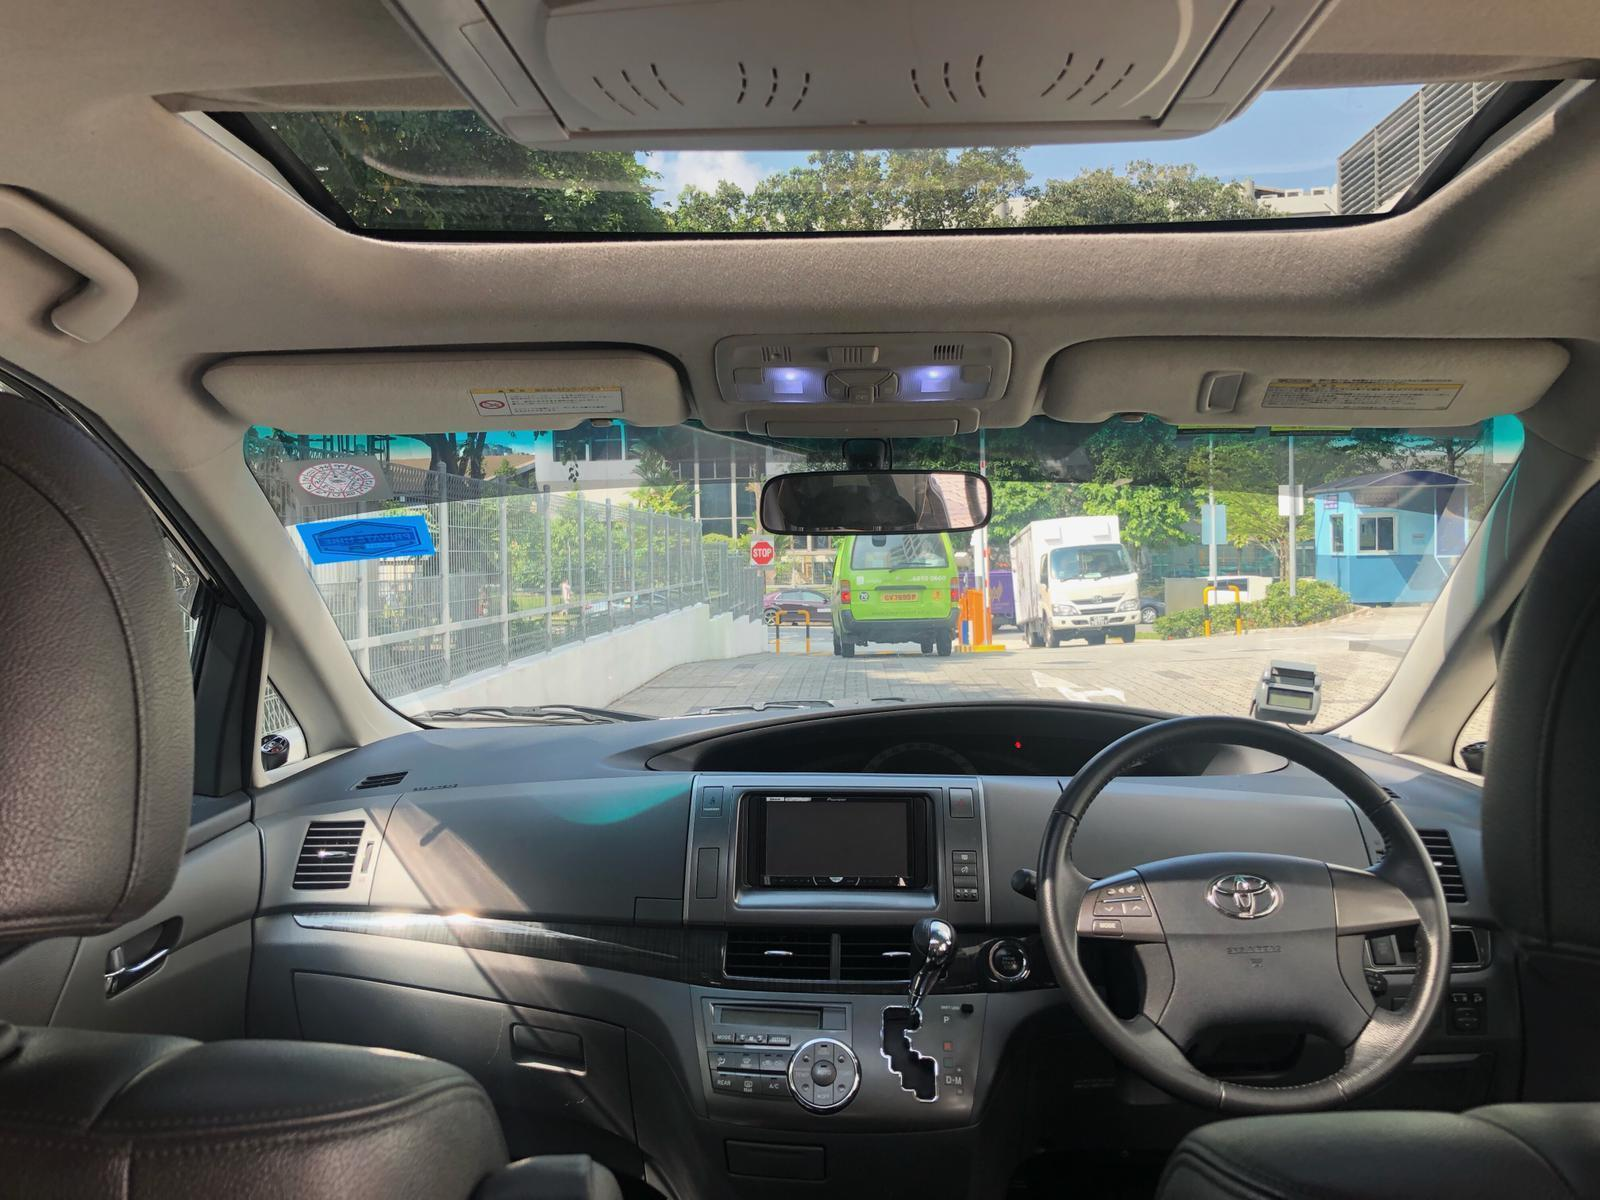 Toyota Estima Super cheap rental for Grab GoJek Ryde or Personal use